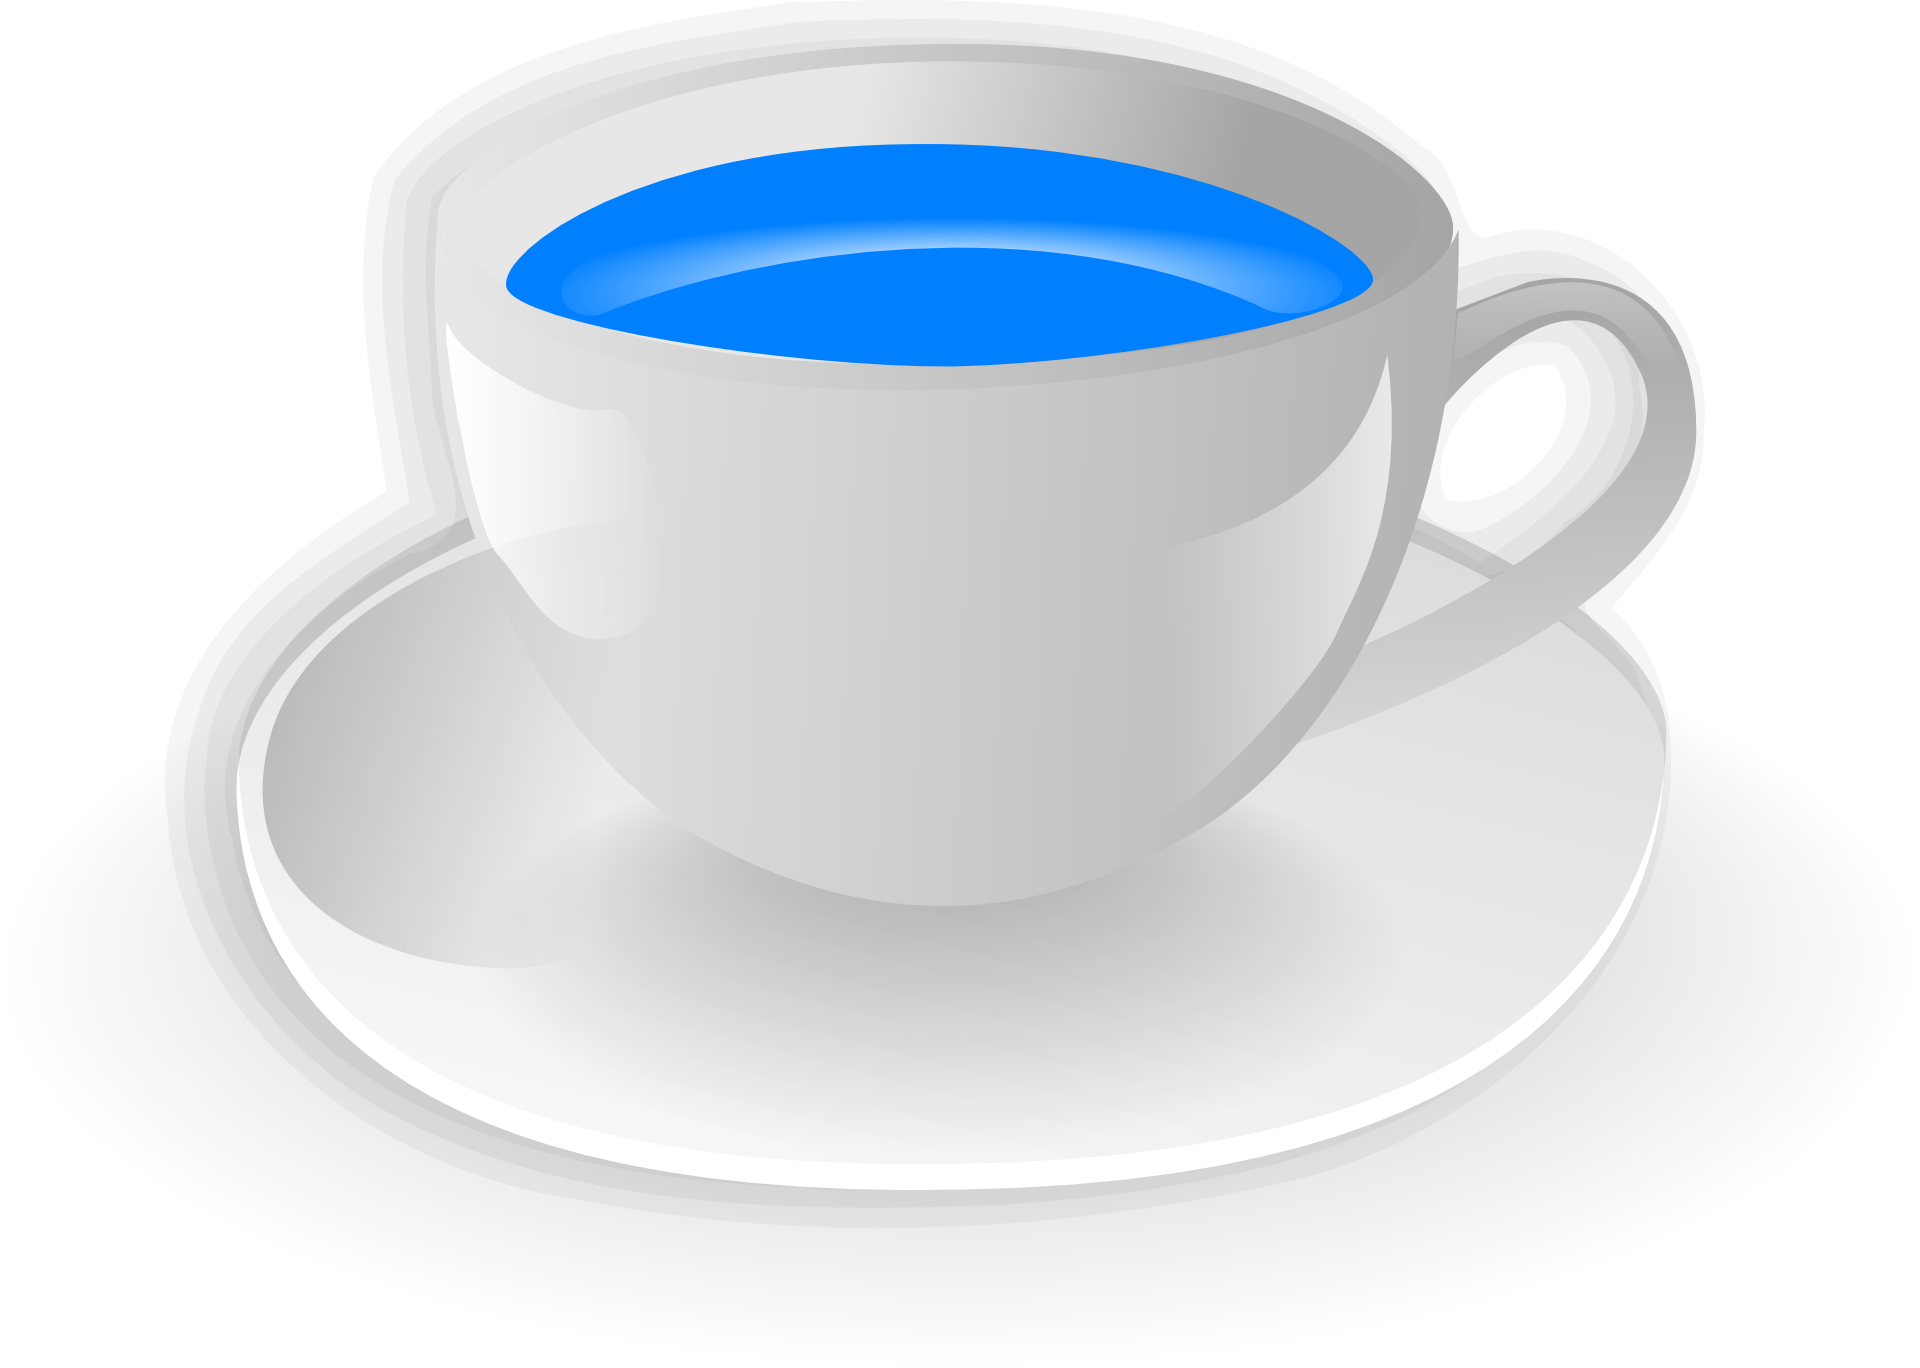 Cup Saucer Drink Drawing Free Image